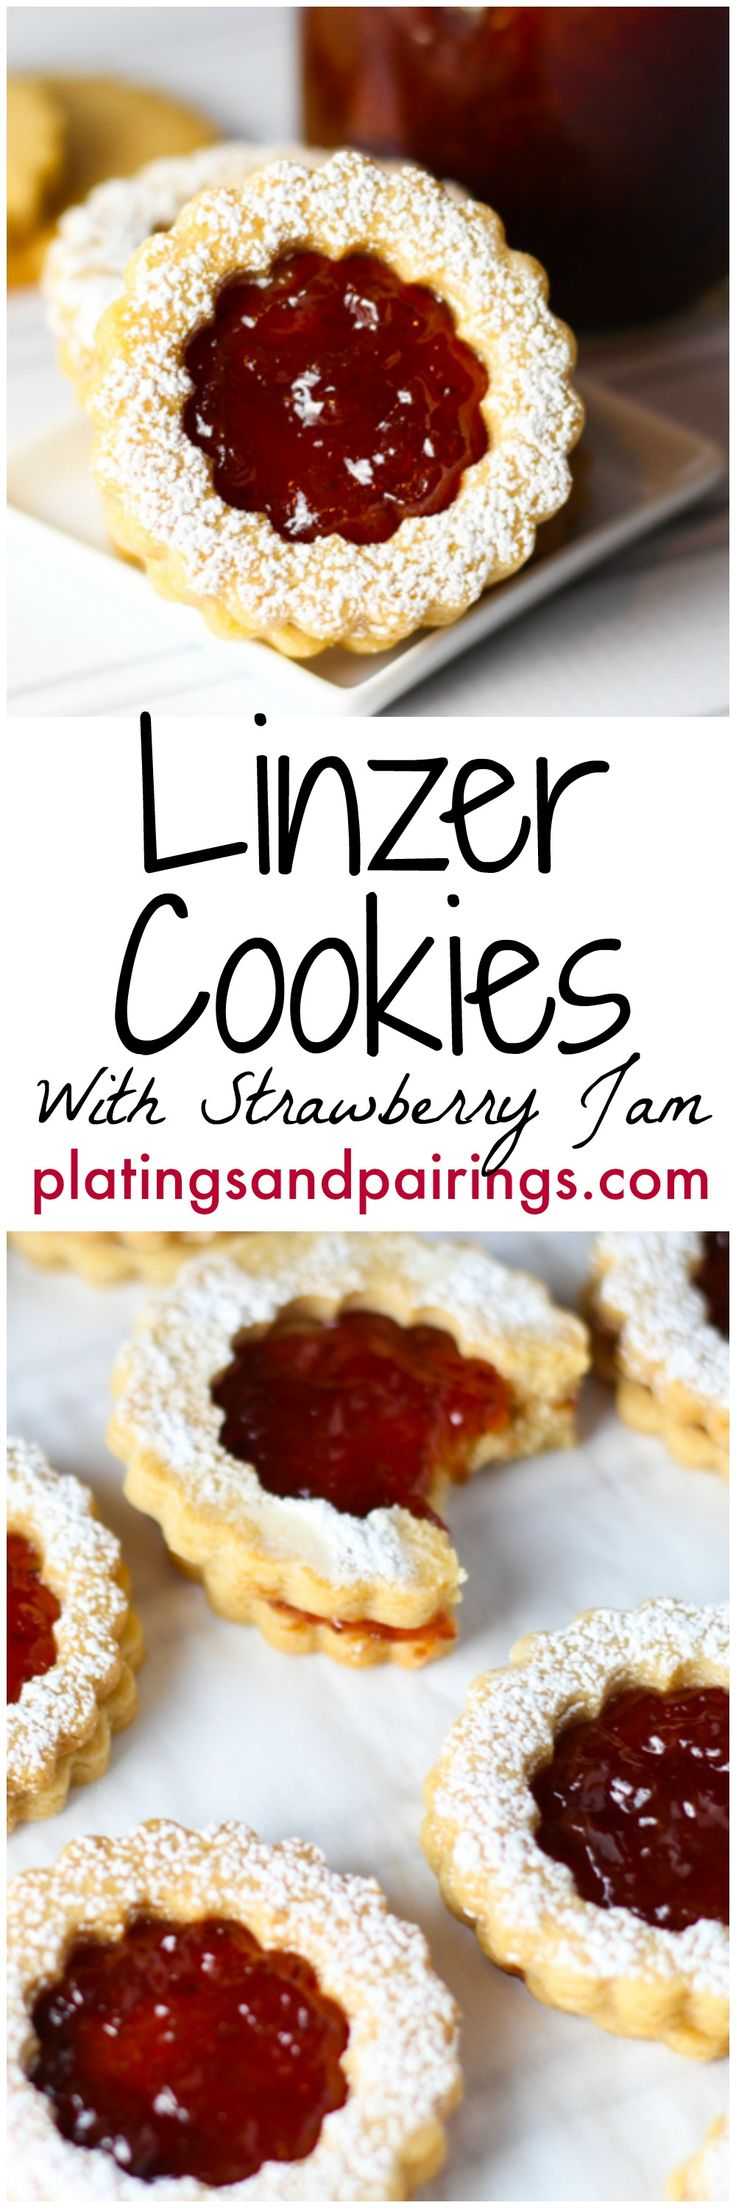 Buttery Shortbread layered with Sweet Strawberry Jam platingsandpairings.com .